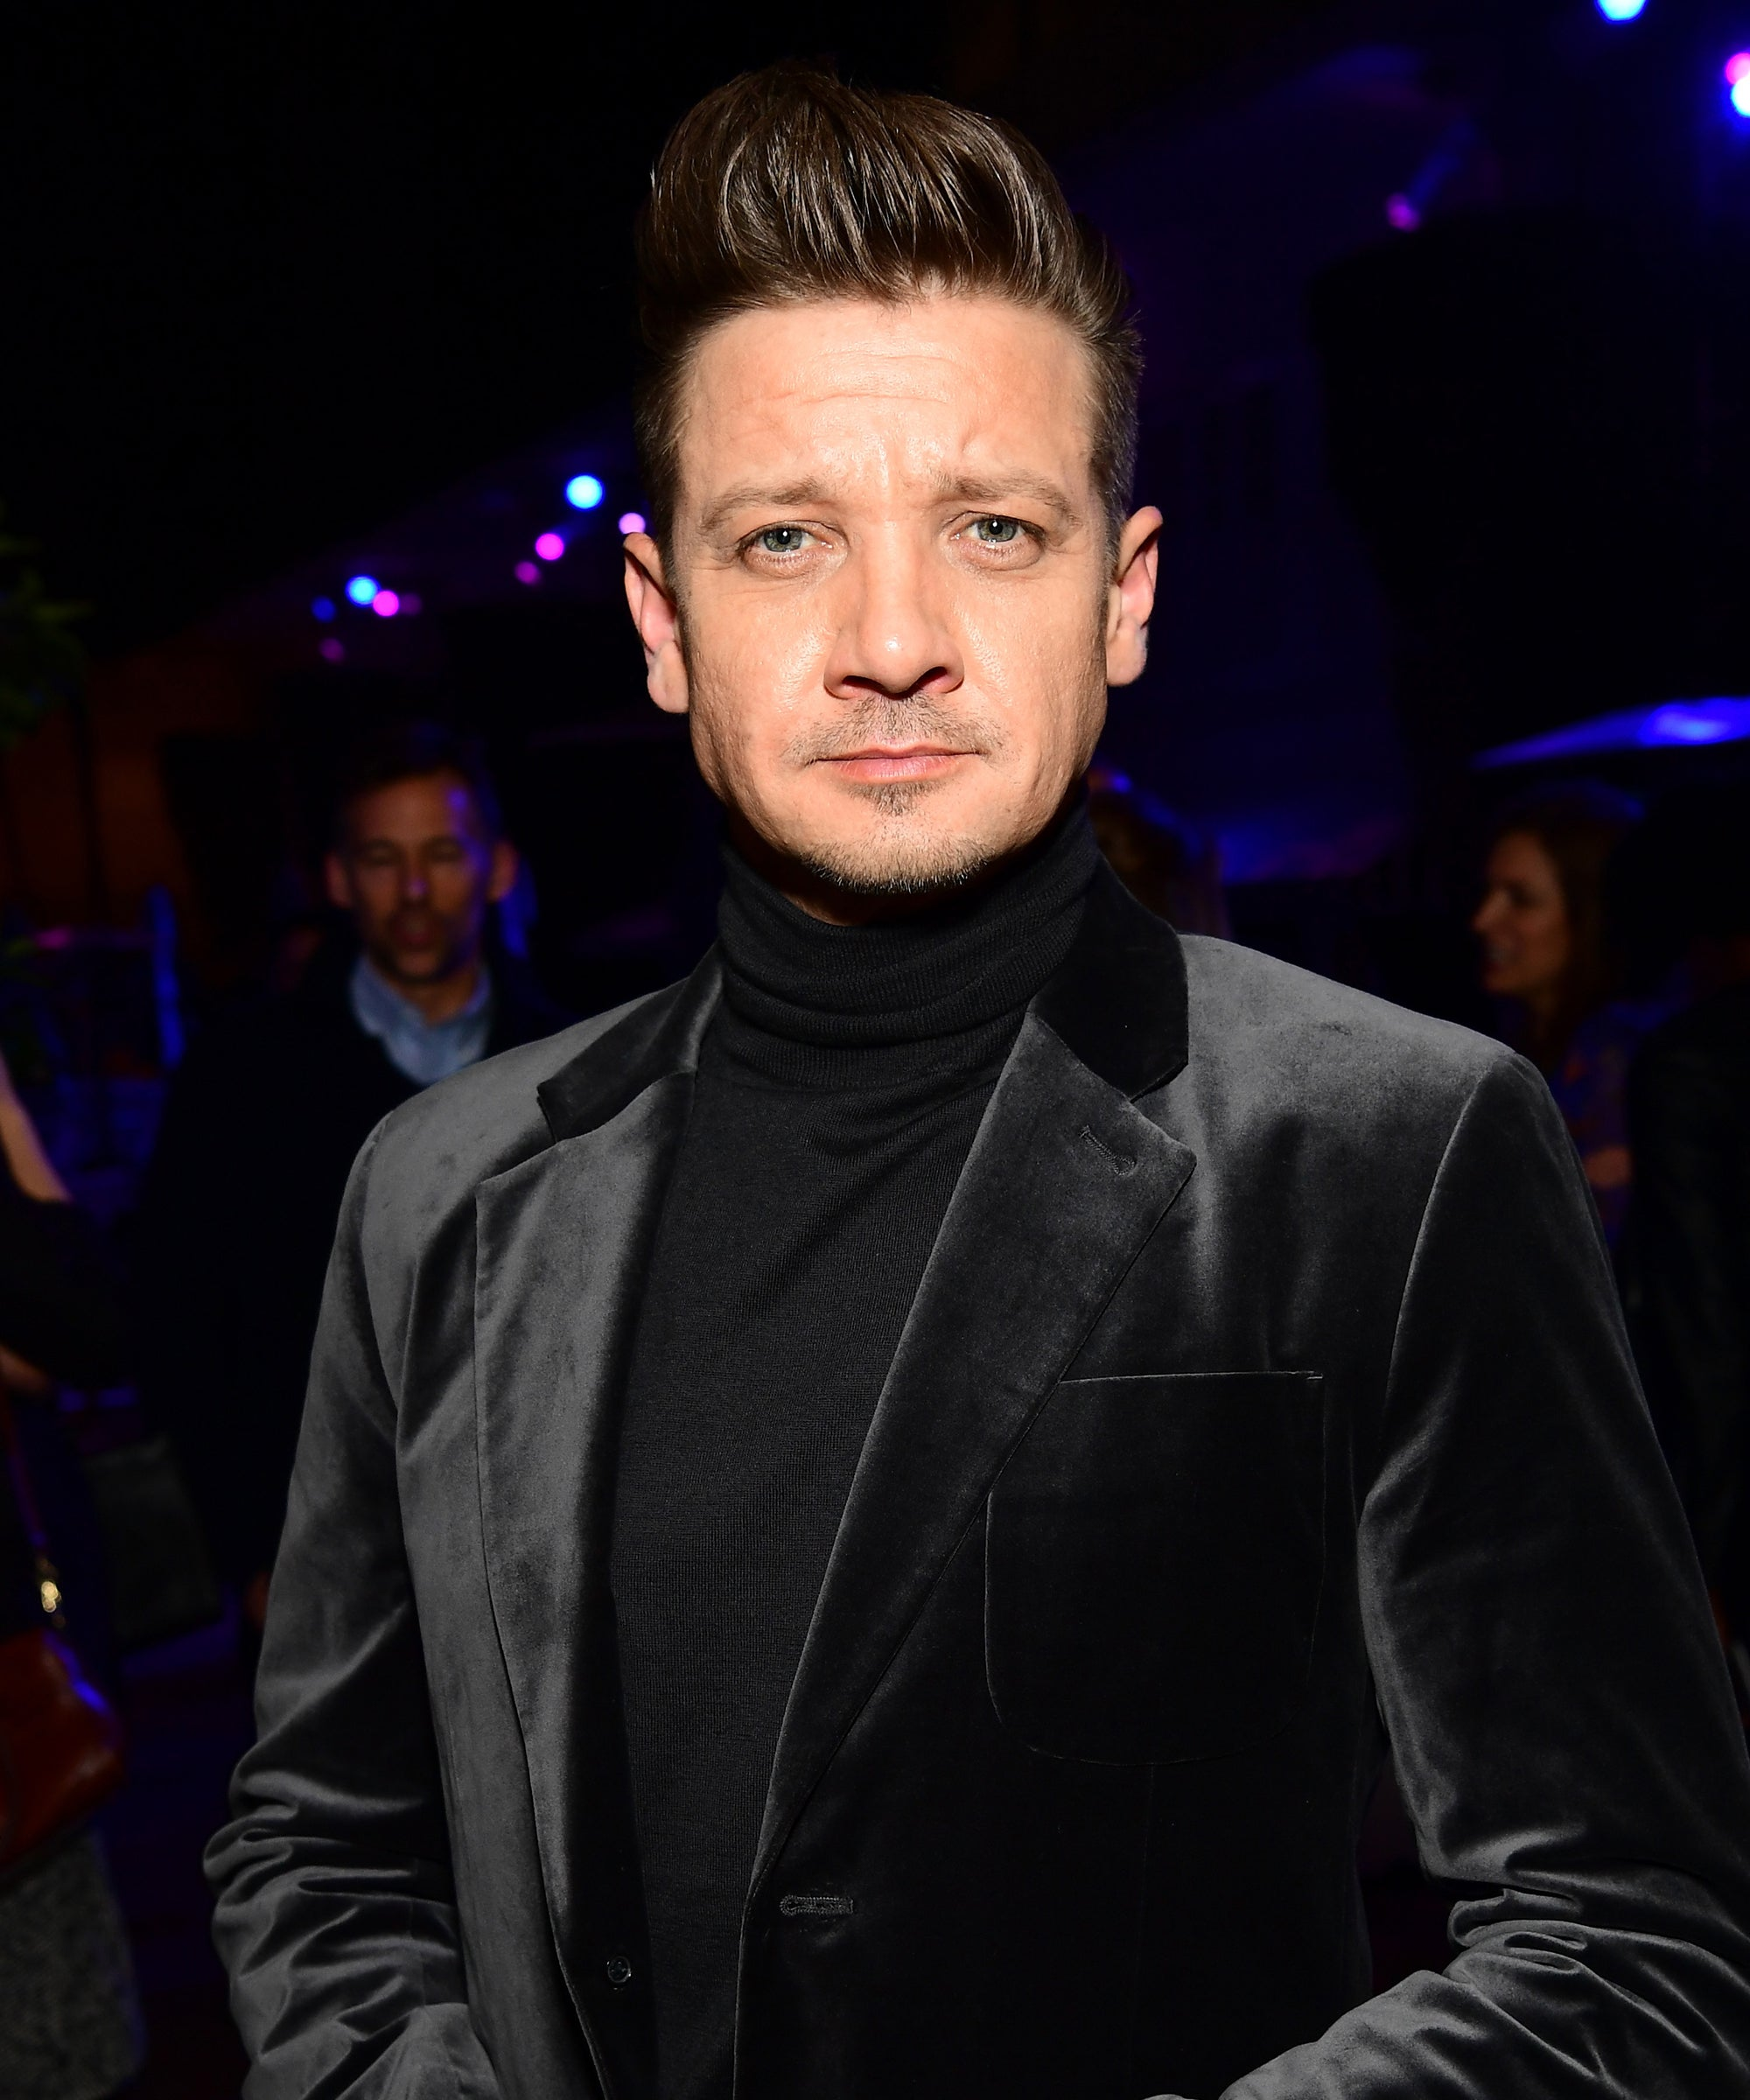 Jeremy Renner's Ex-Wife, Sonni Pacheco, Says He Threatened Her Life & Shot A Gun In Their Home